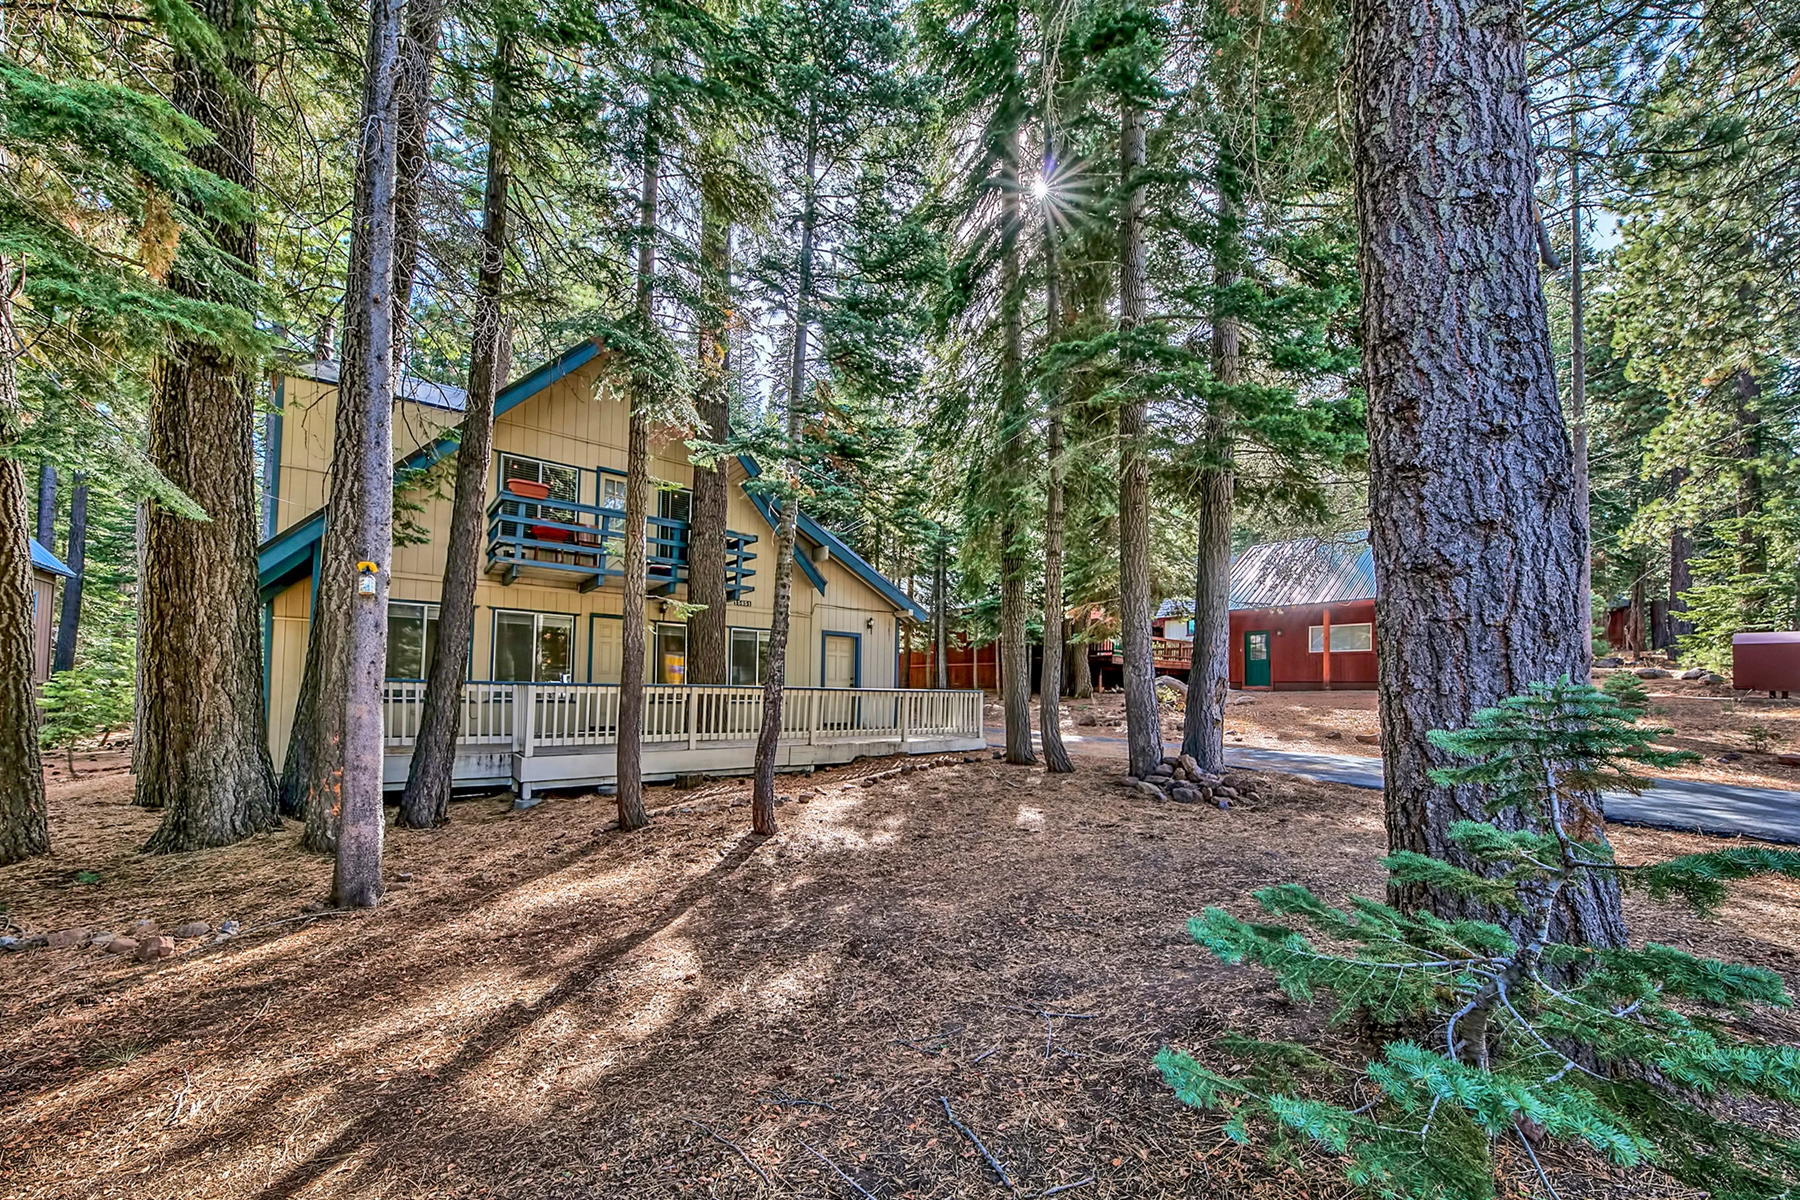 Single Family Home for Active at 15851 Northwoods Blvd, Truckee Ca 96161 15851 Northwoods Blvd. Truckee, California 96161 United States